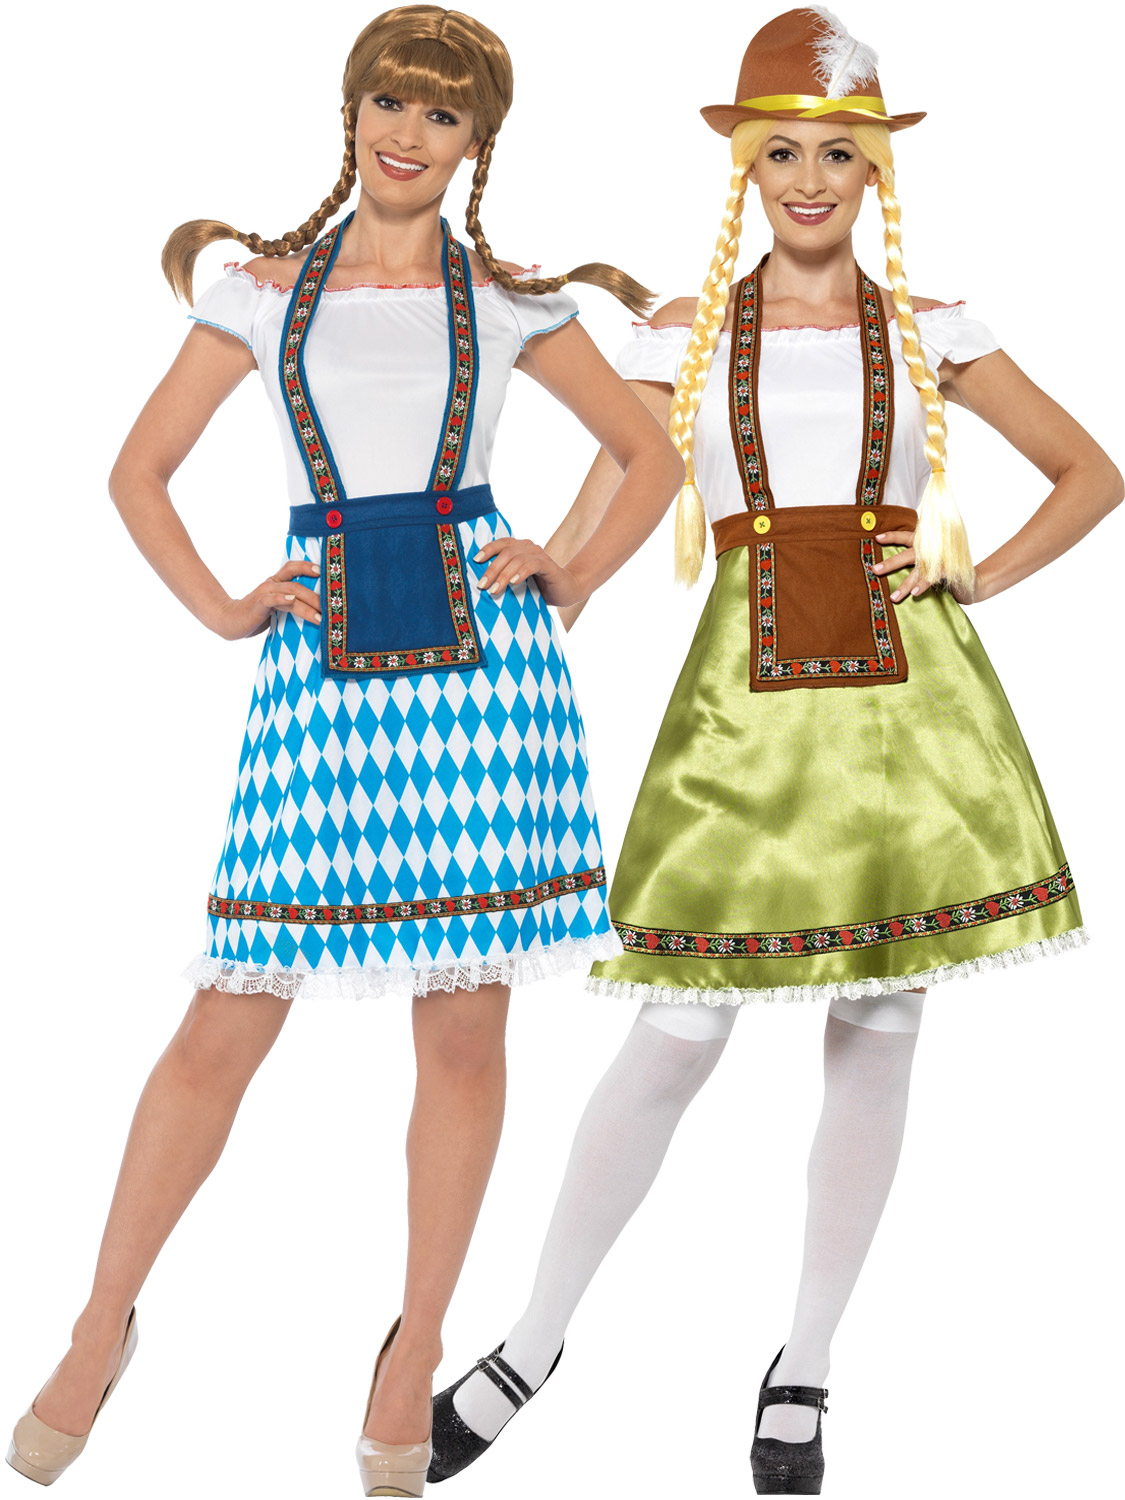 ladies oktoberfest costume womens german bavarian fancy dress beer festival ebay. Black Bedroom Furniture Sets. Home Design Ideas